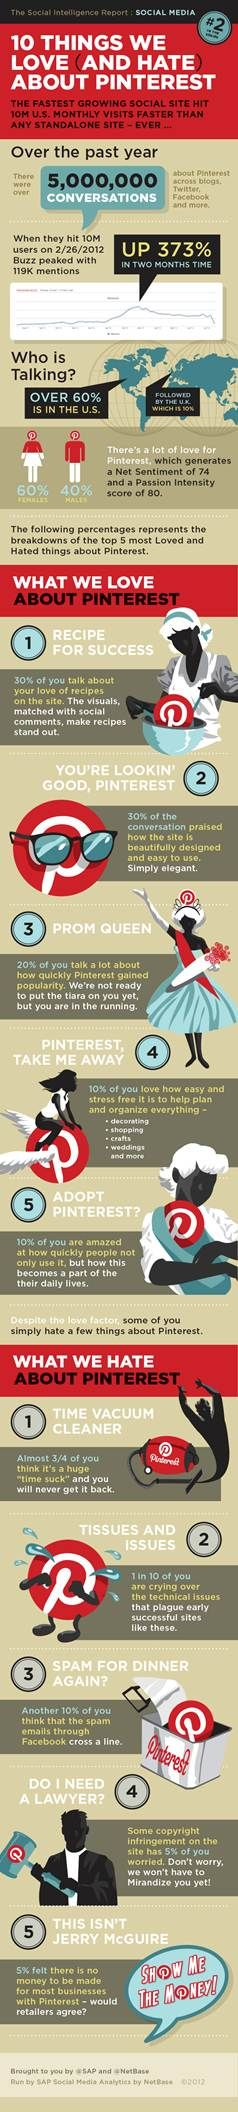 10 things we love and hate about #Pinterest